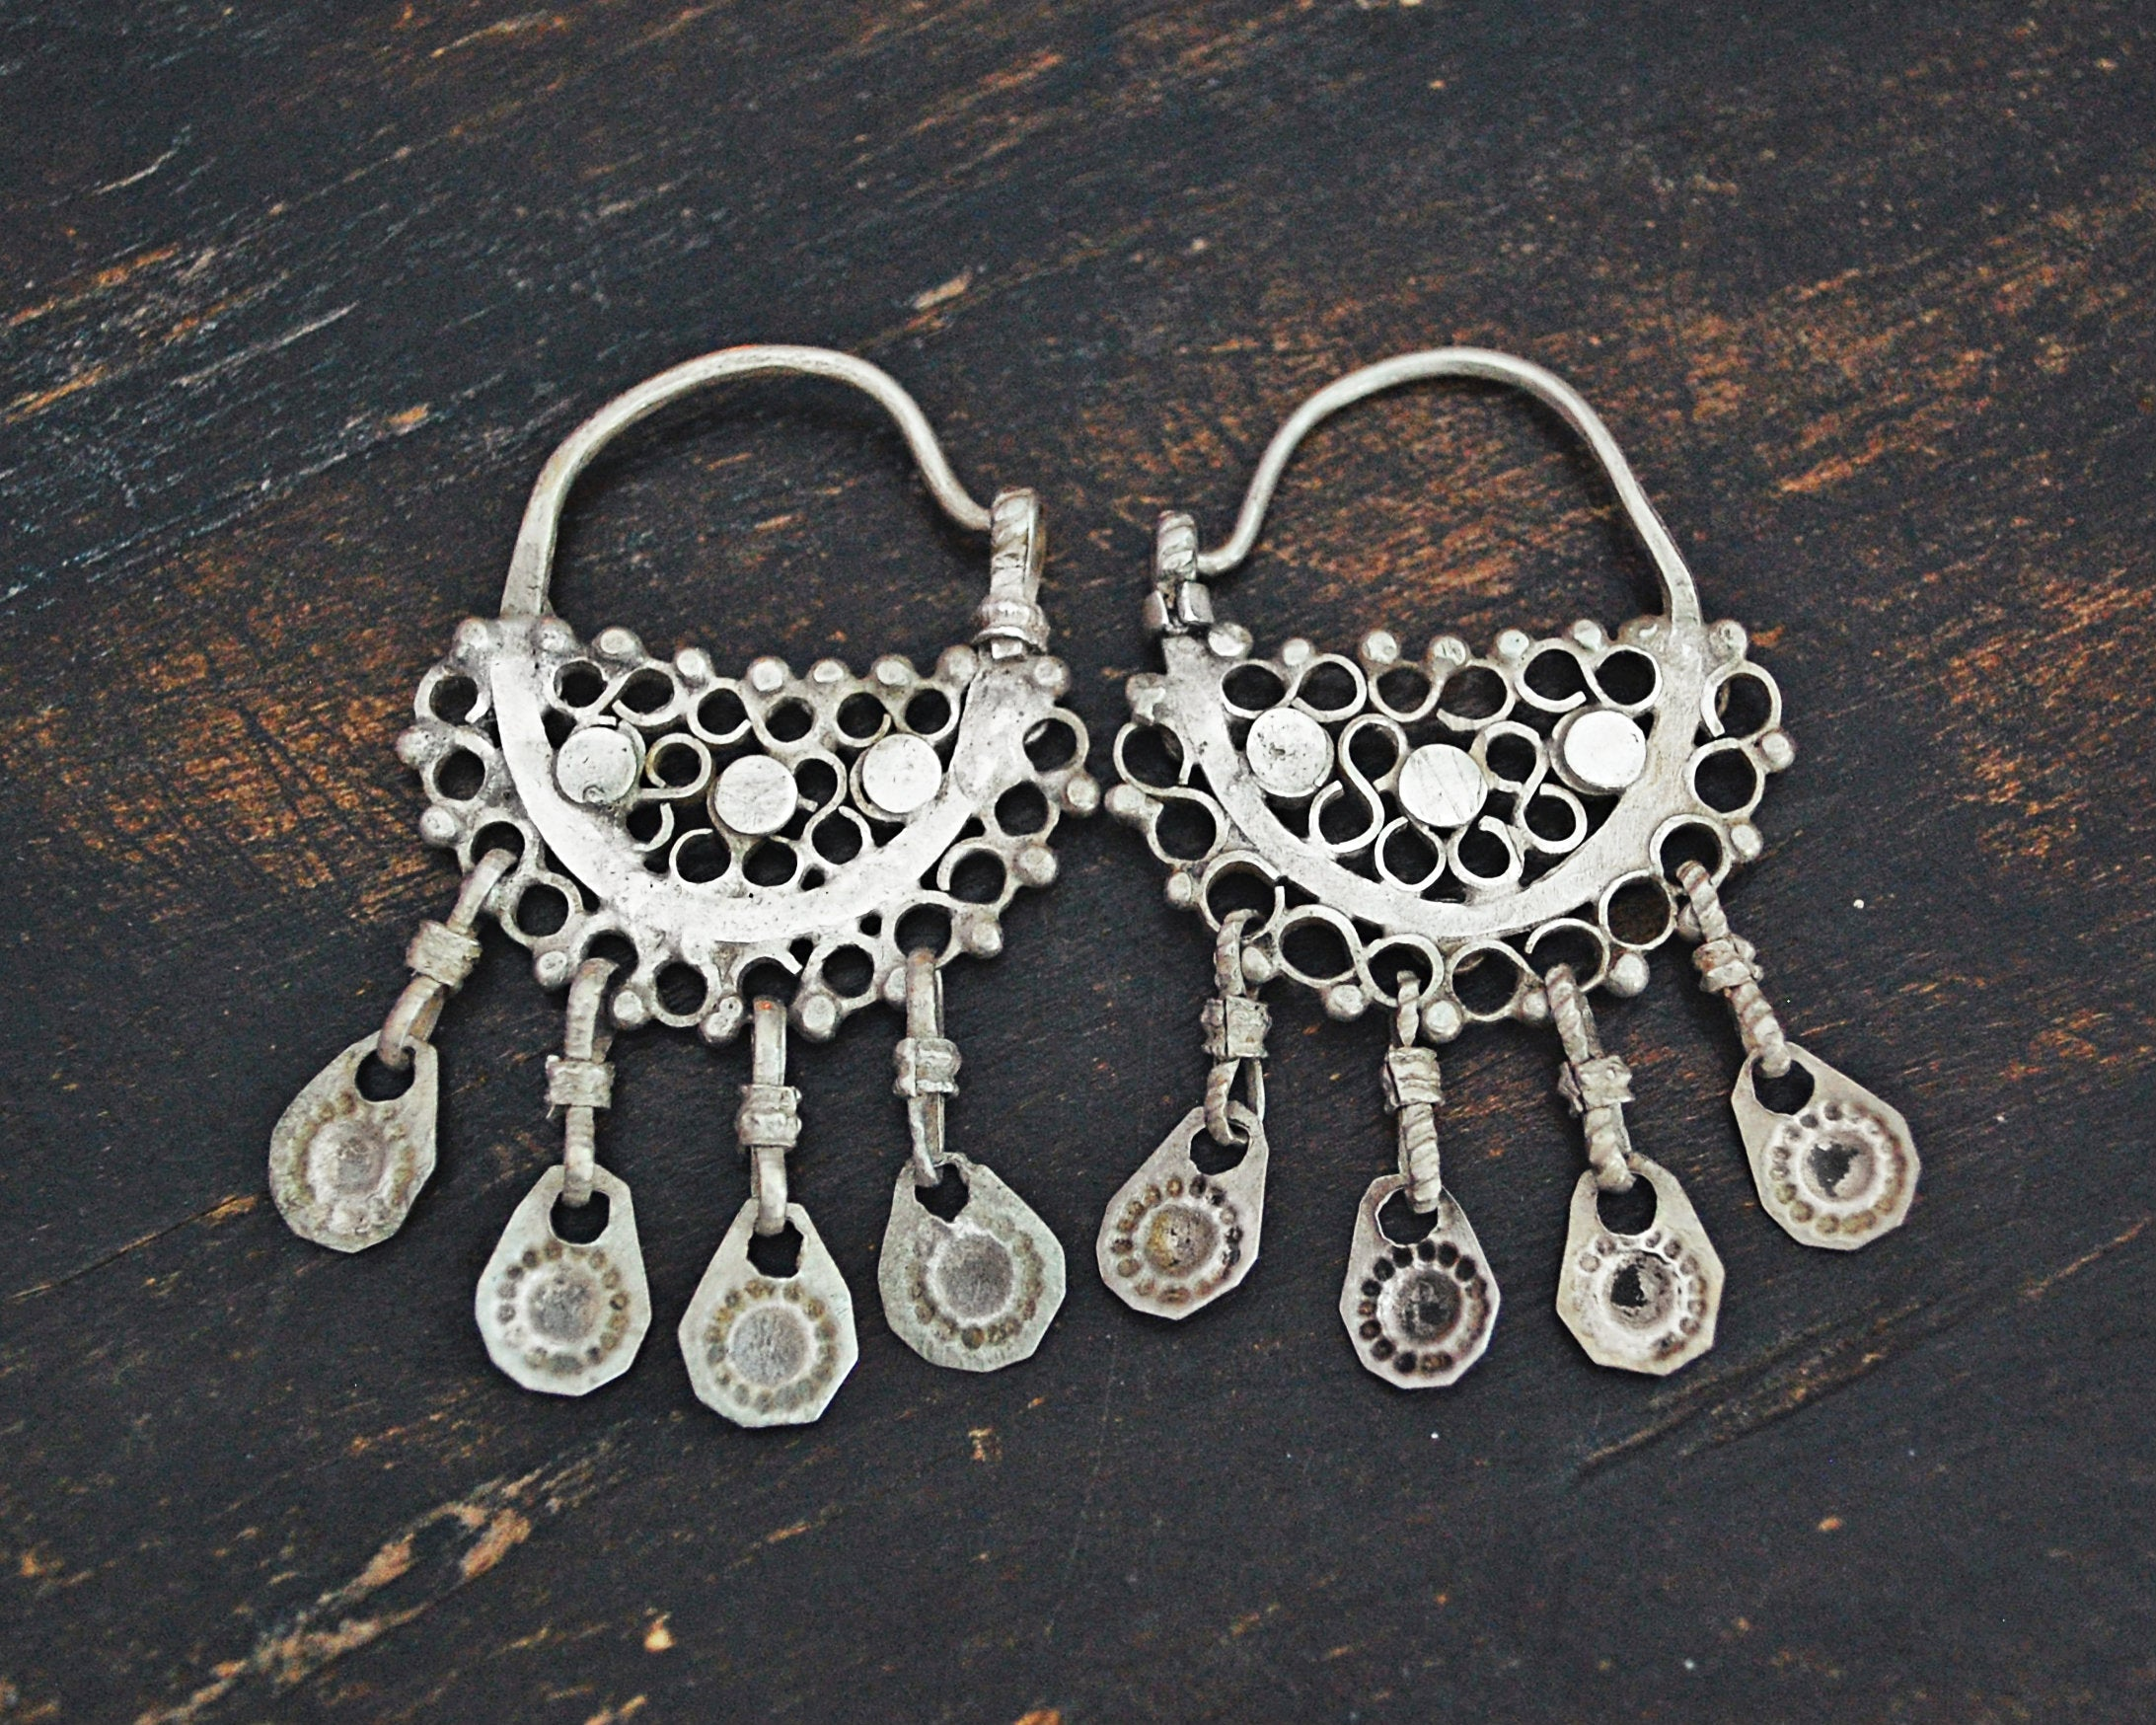 Antique Afghani Hoop Earrings with Tassels